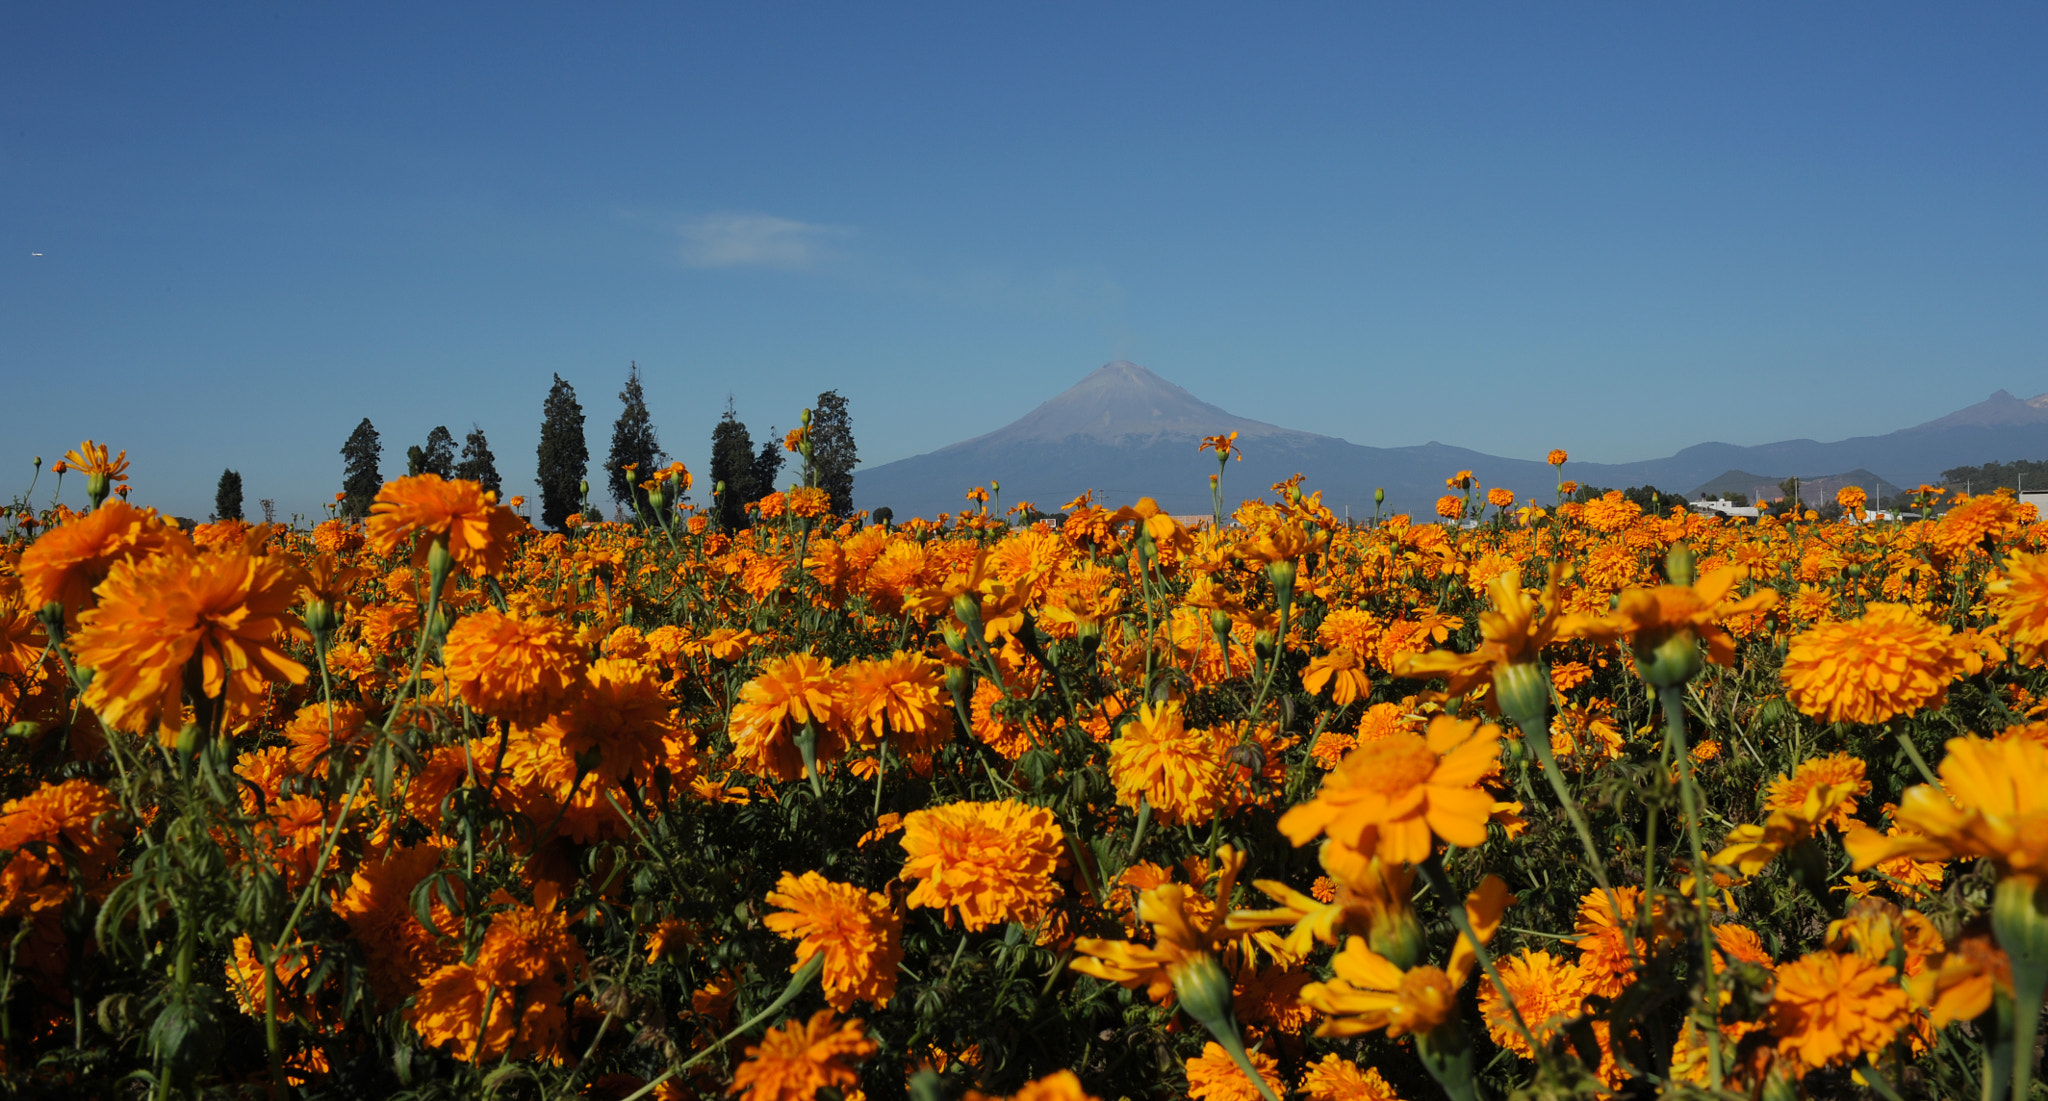 Photograph Cempazuchitl, orange flowers and Volcano by Cristobal Garciaferro Rubio on 500px